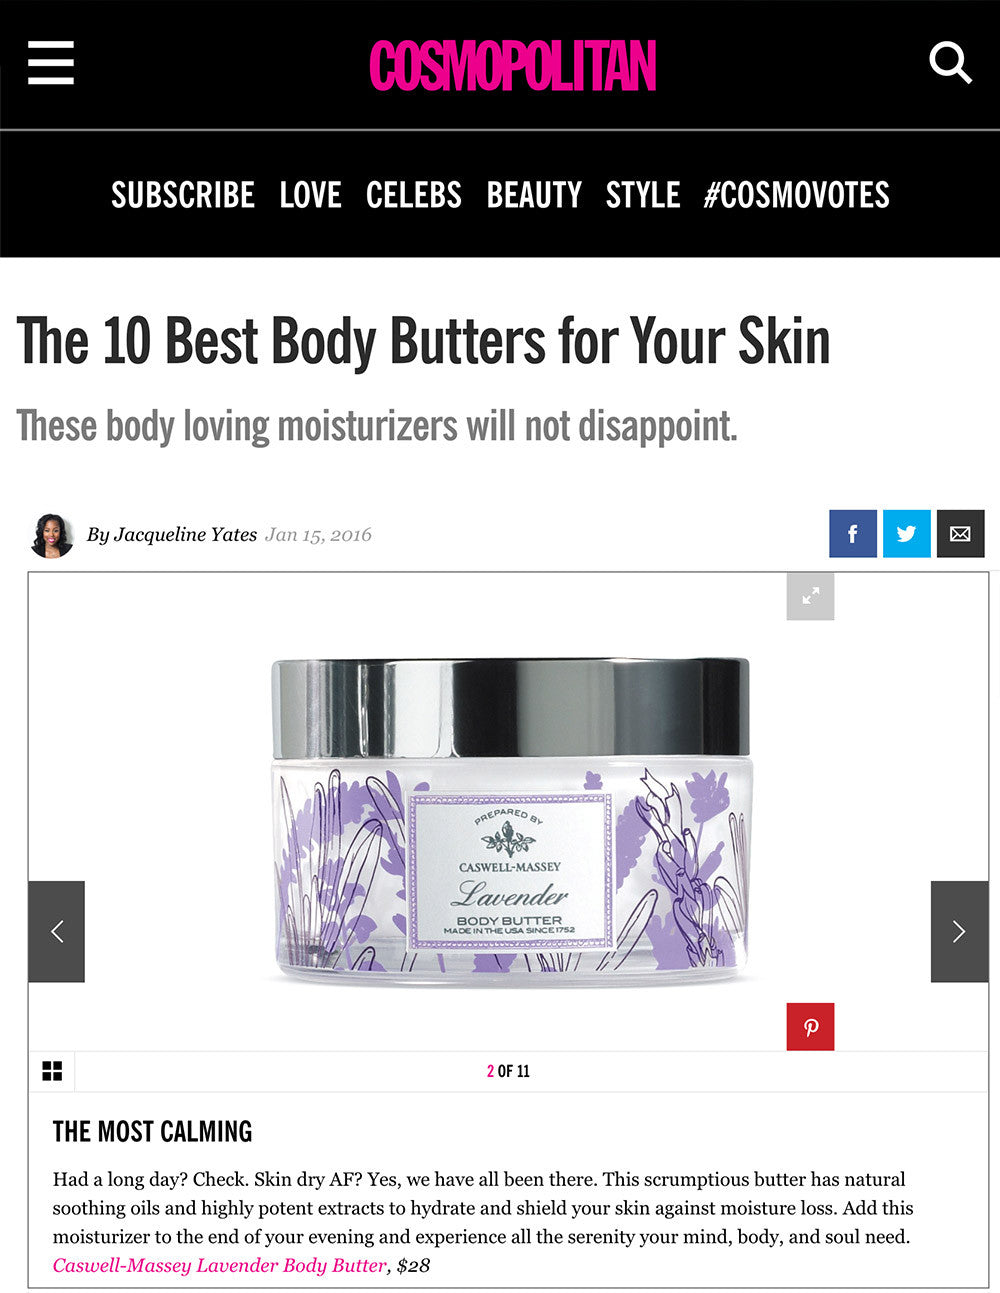 Lavender Body Butter featured in Cosmopolitan